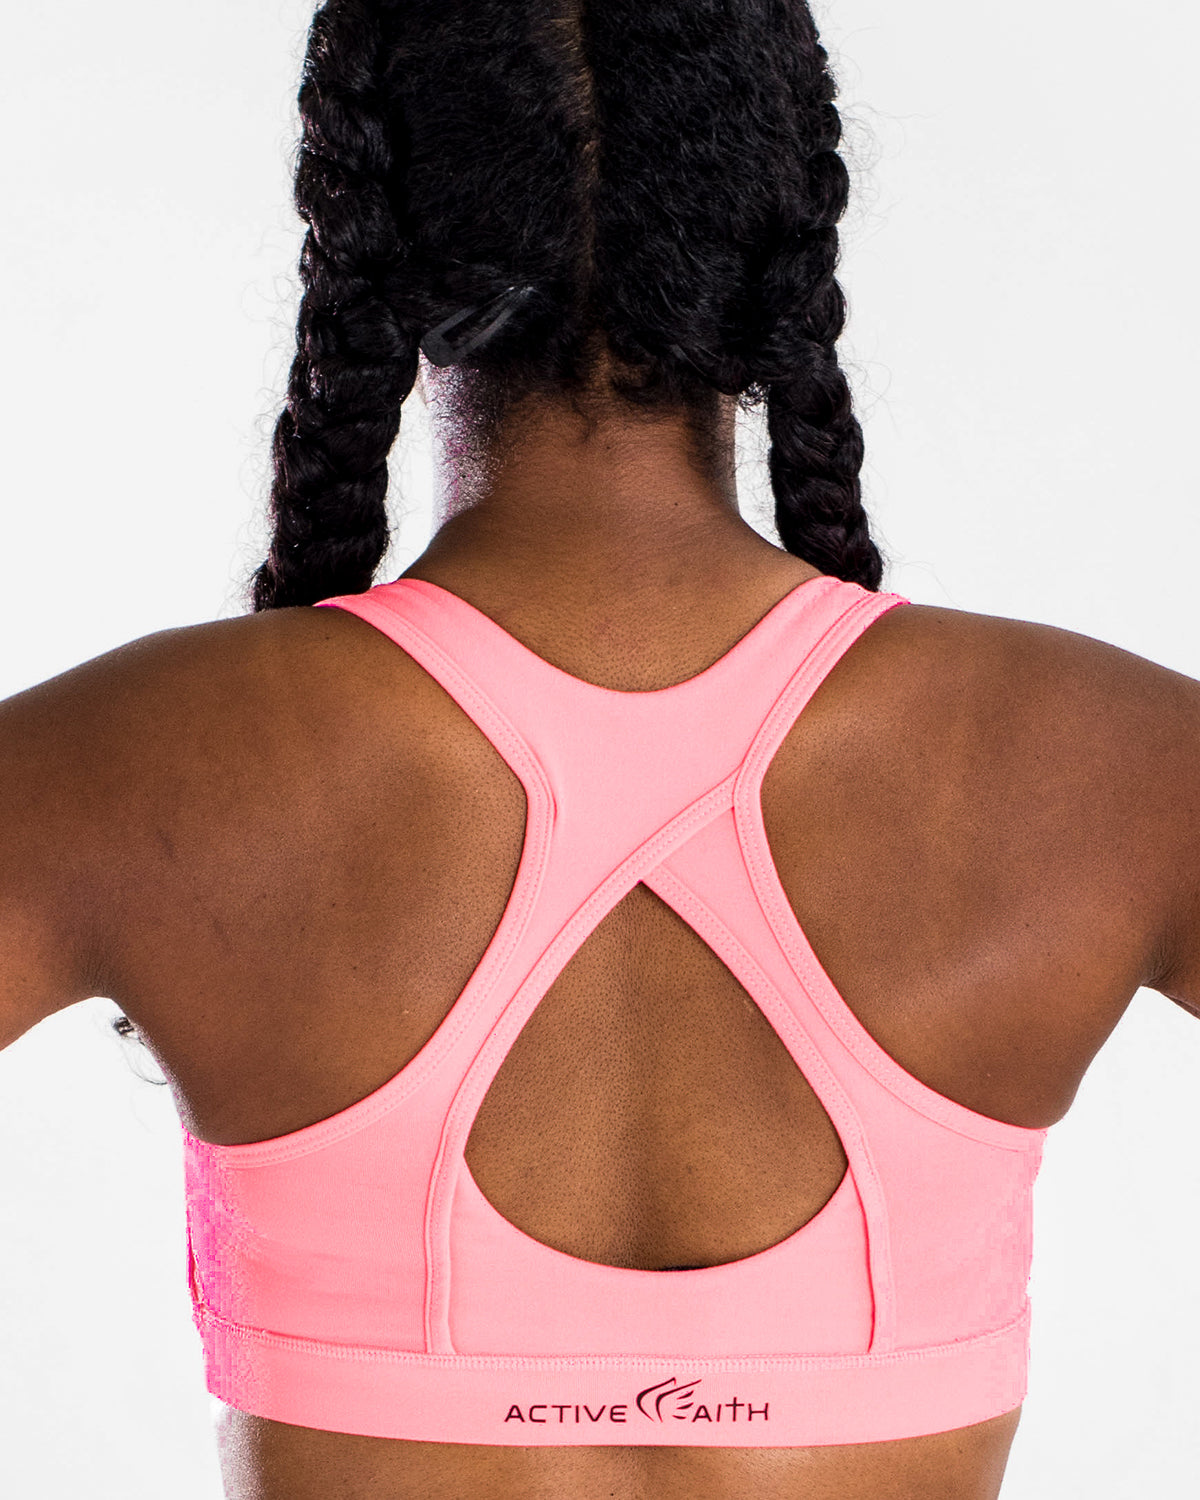 Women's Active Faith Sports Bra